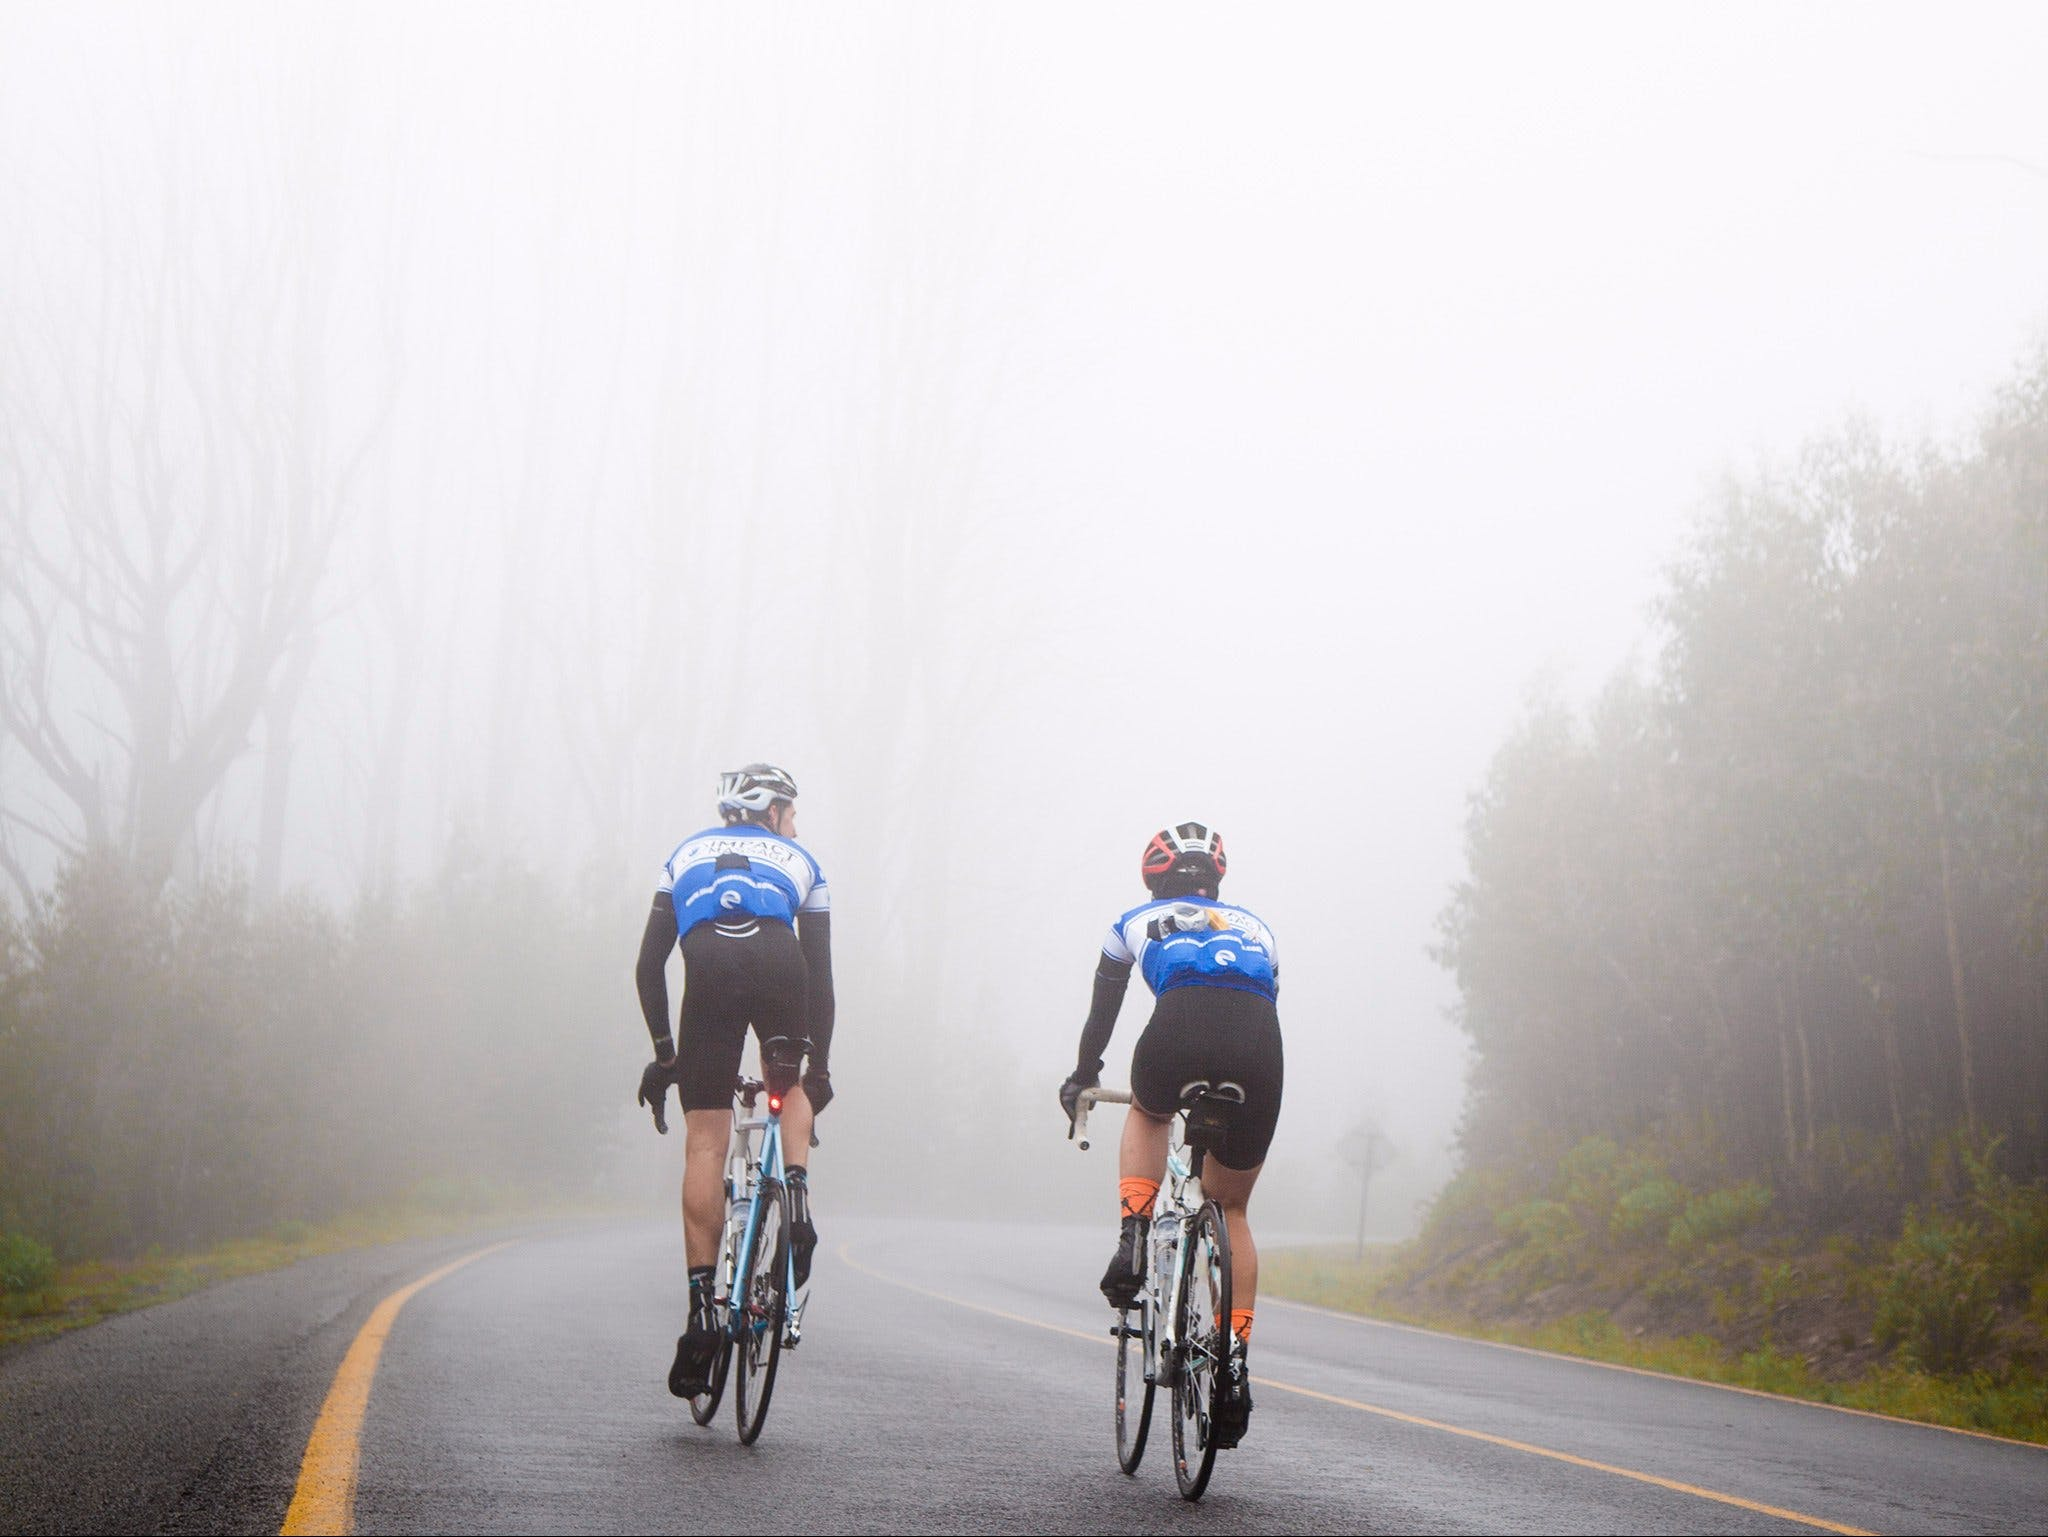 7 Peaks Ride - Lake Mountain - tourismnoosa.com